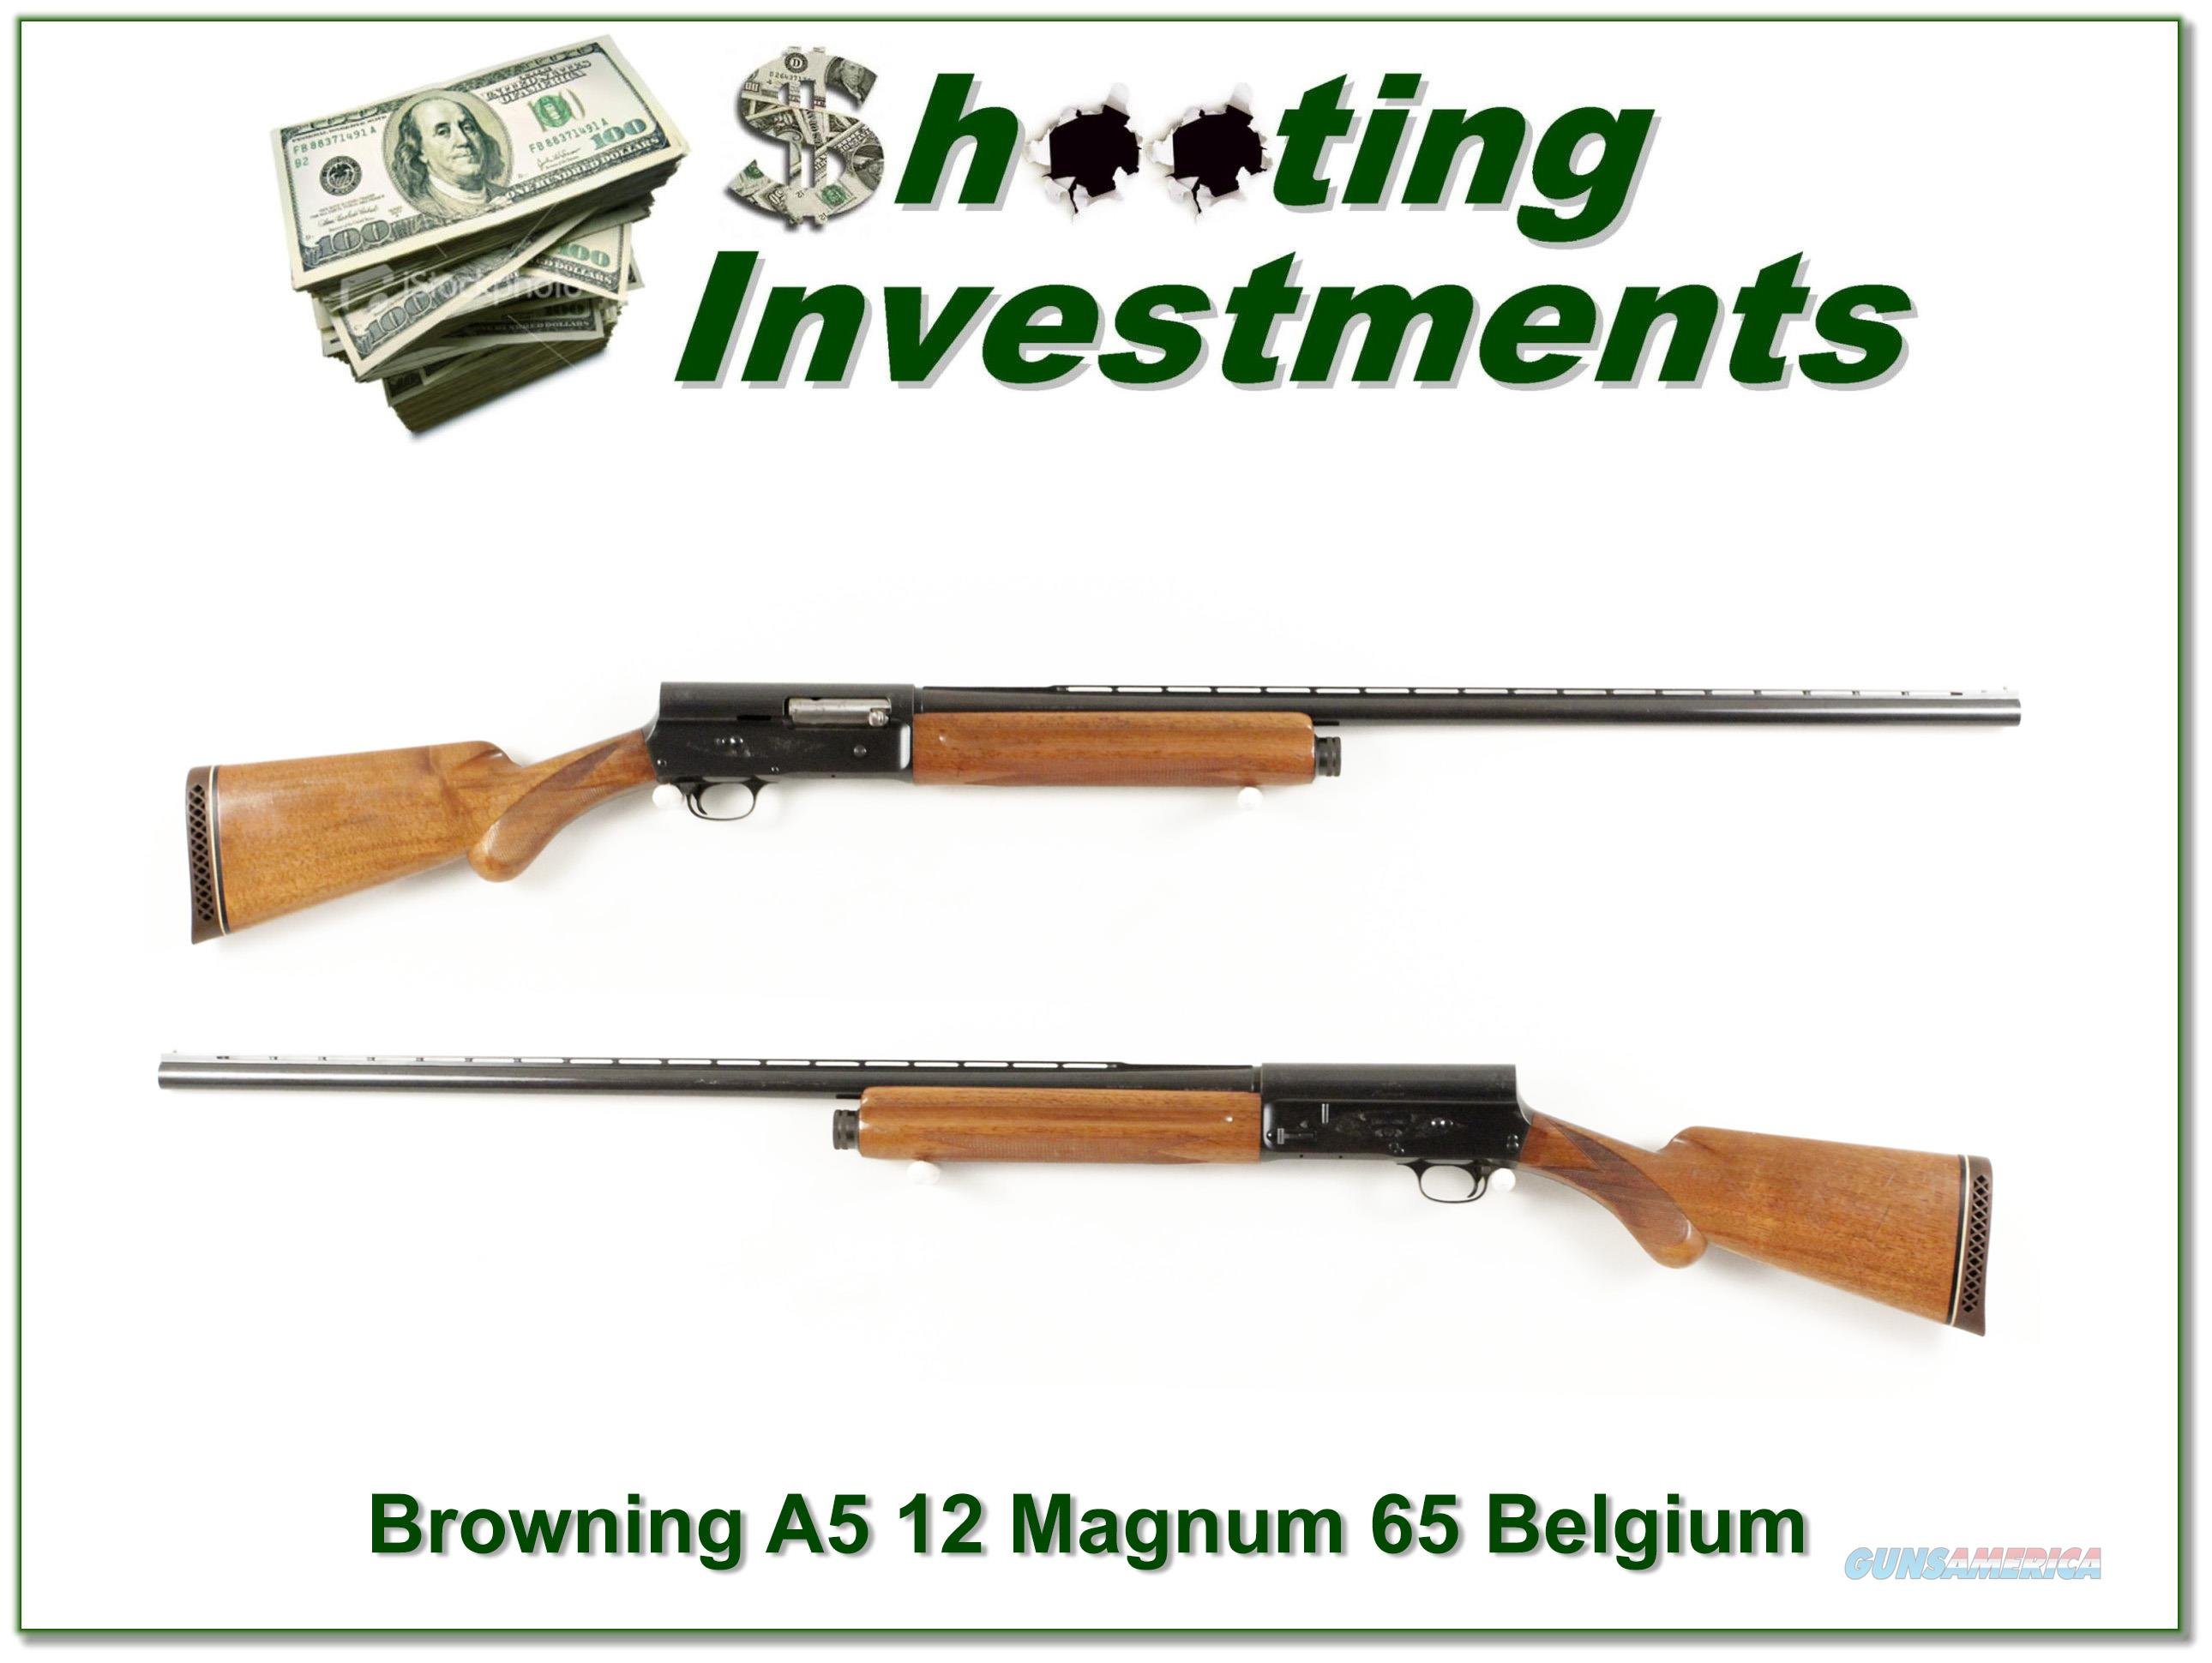 Browning A5 Magnum 12 65 Belgium Blond!  Guns > Shotguns > Browning Shotguns > Autoloaders > Hunting